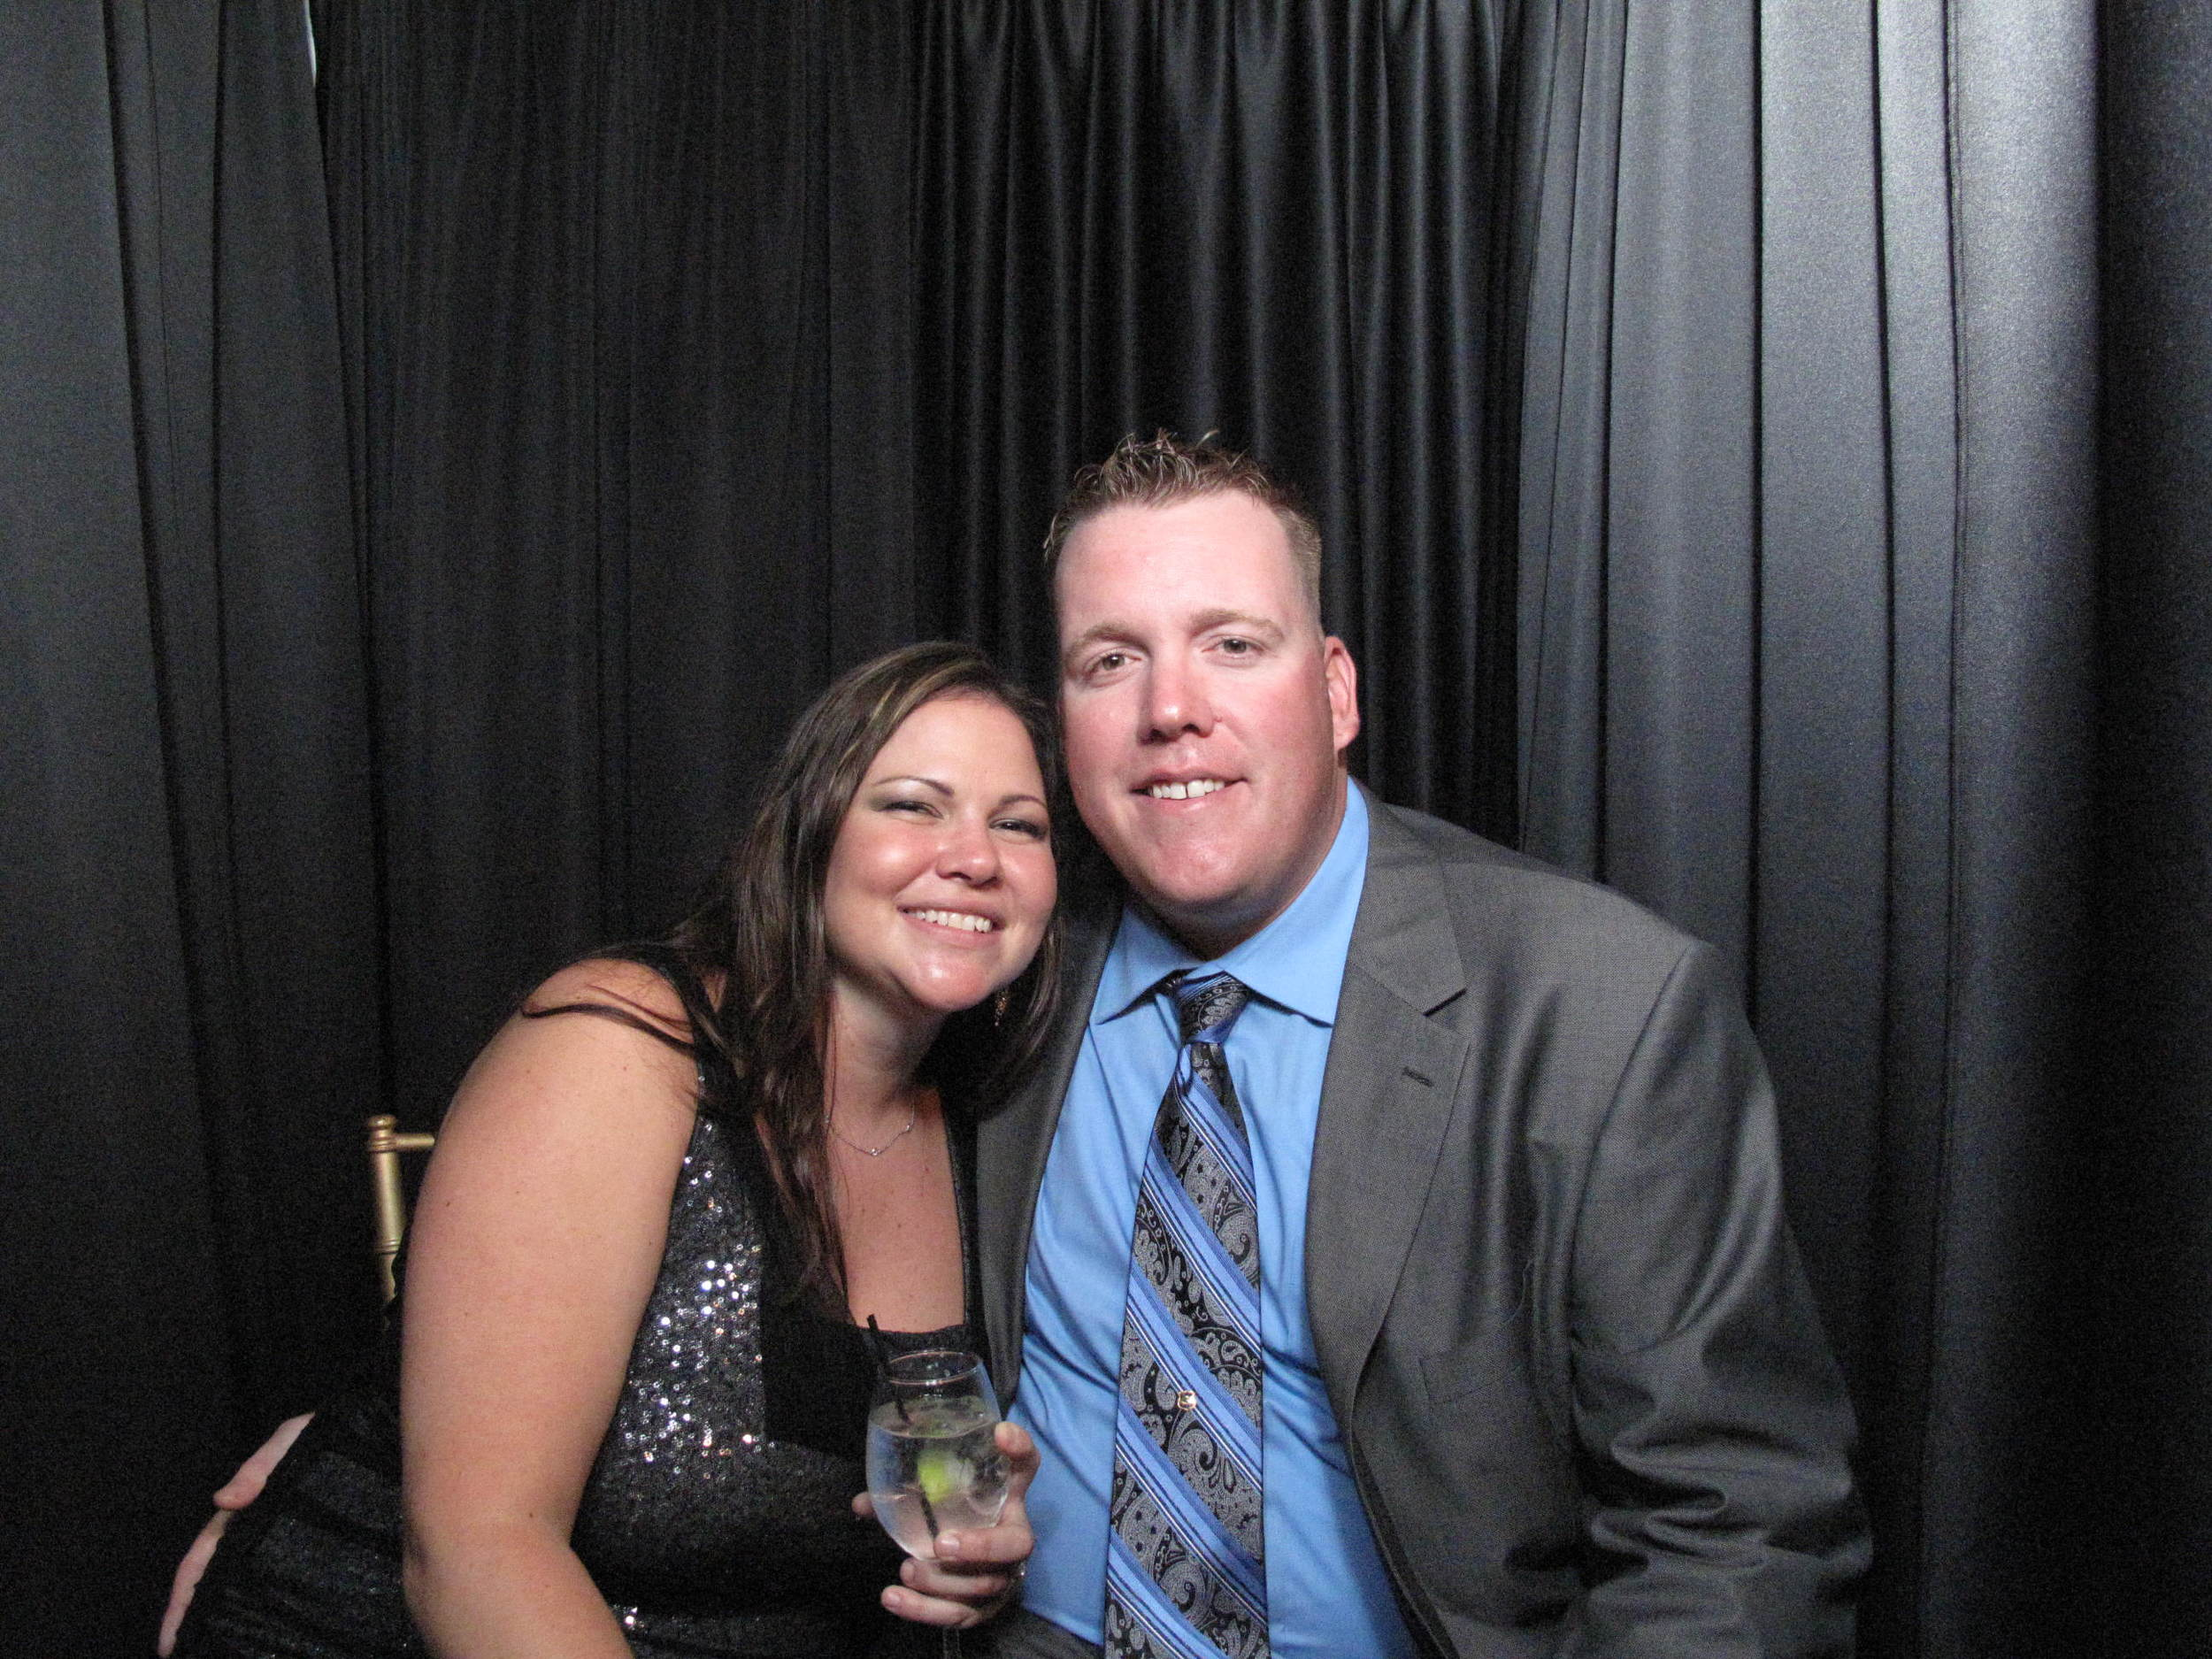 Snapshot Photobooths at Liberty House in Jersey City, New Jersey